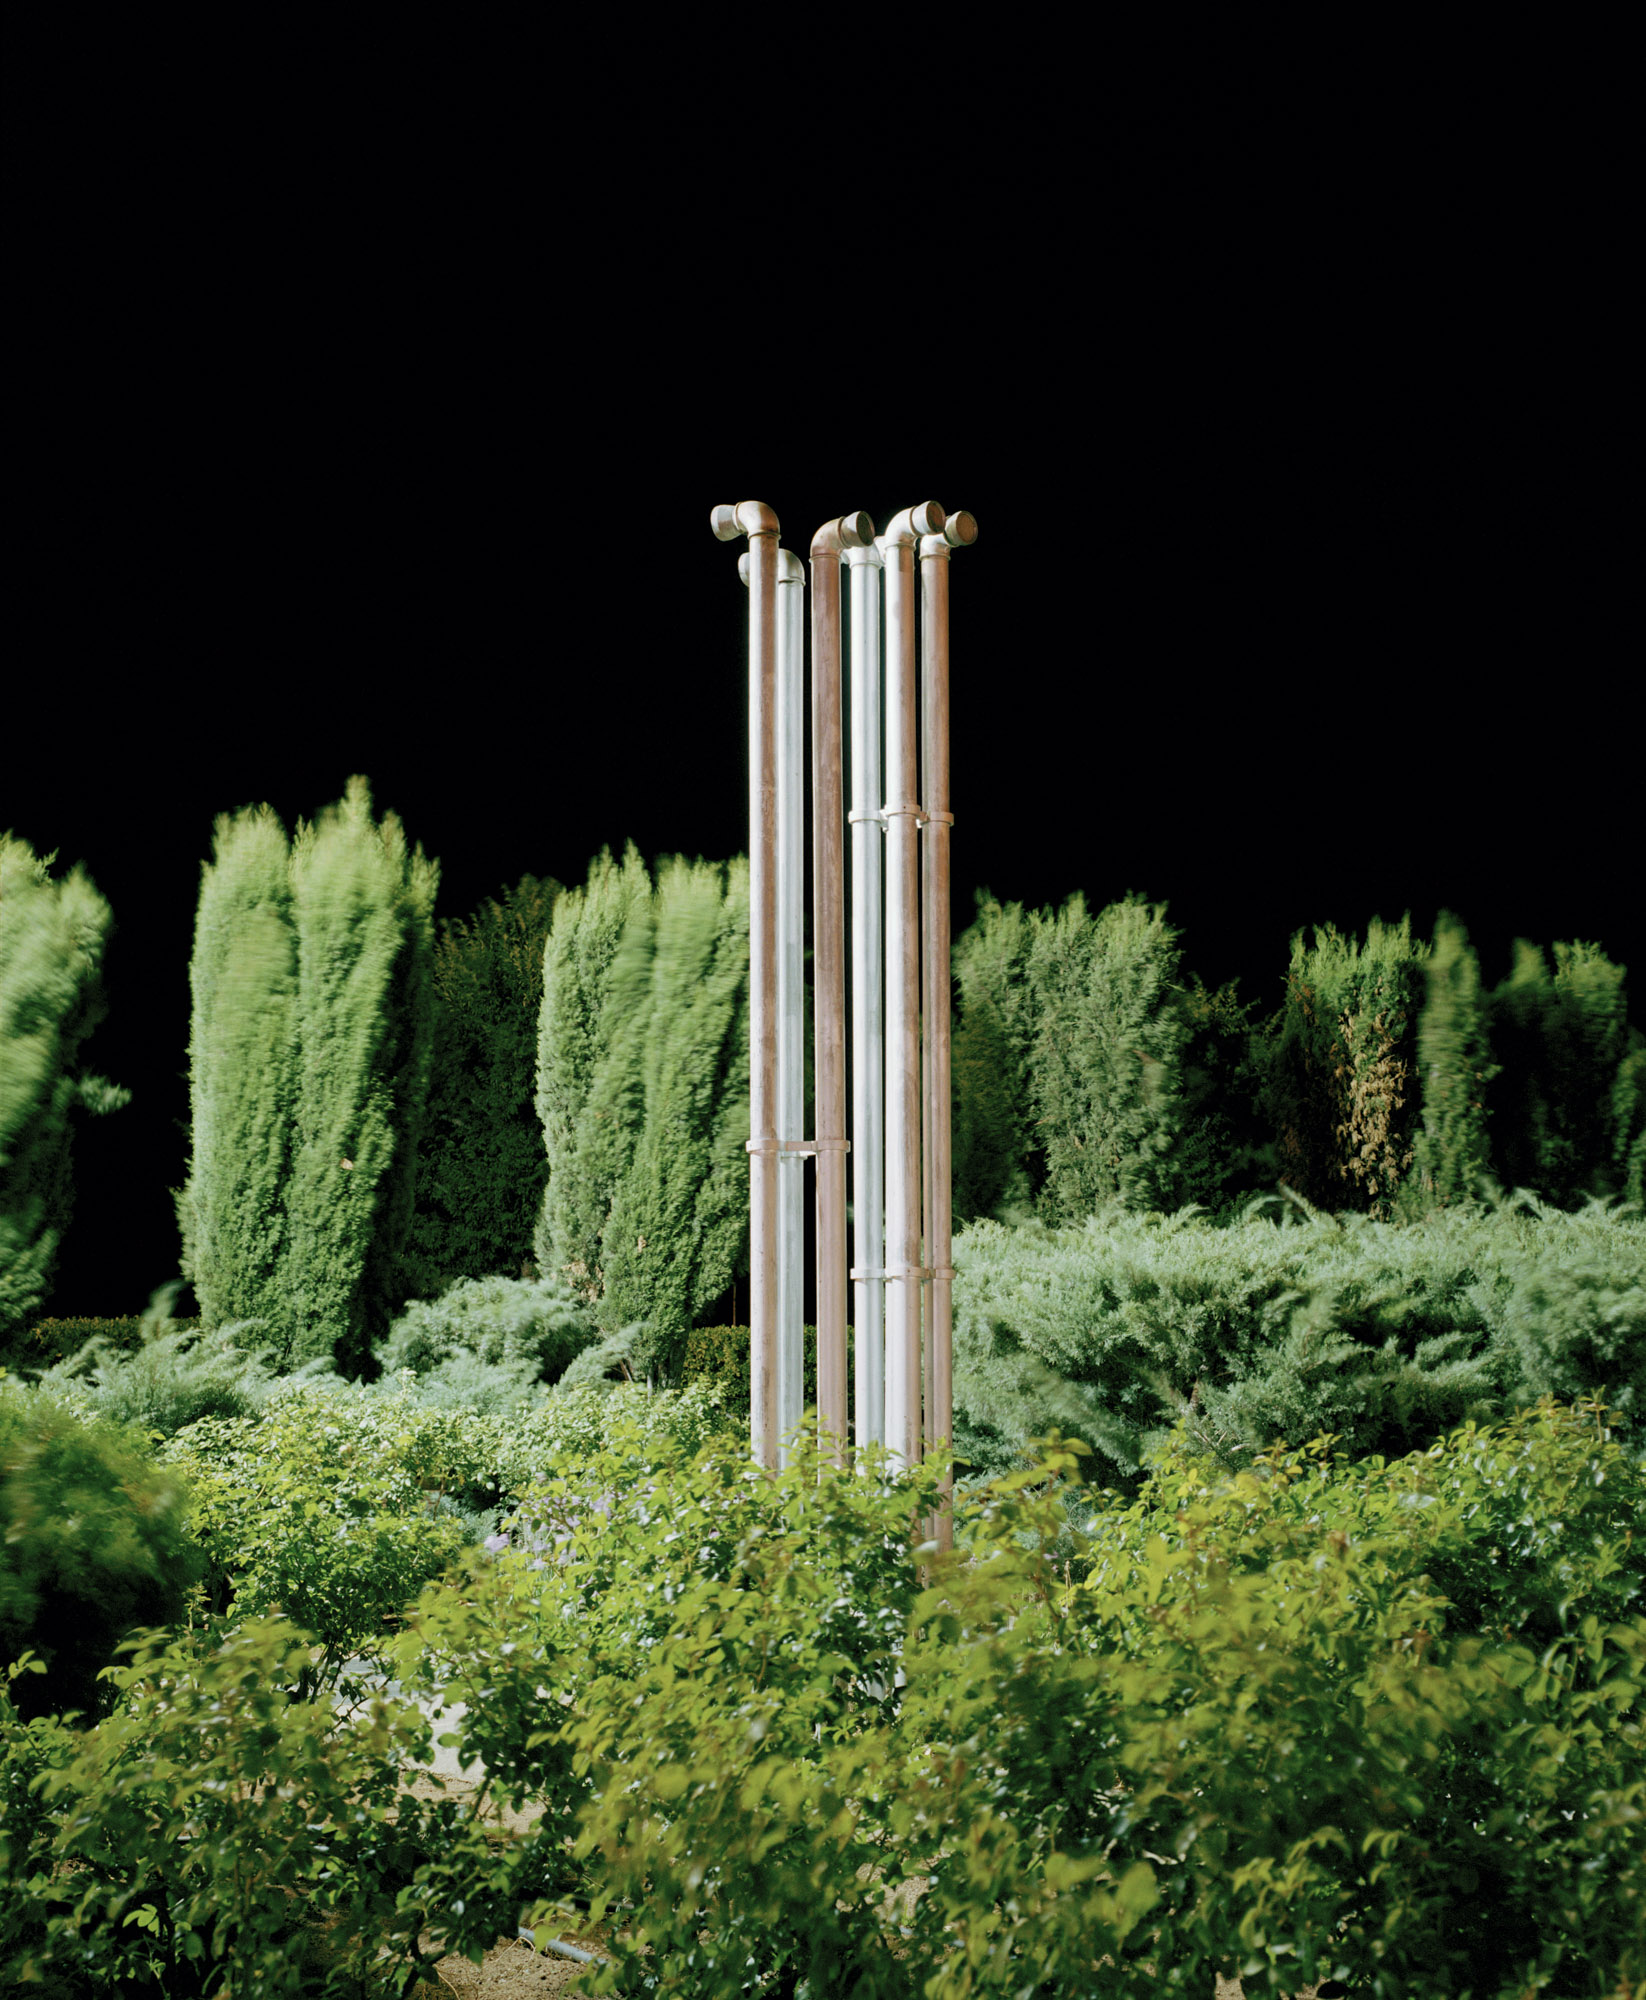 Have you ever noticed how cellphone towers in cities are disguised to look like trees while in the countryside they remain blatant red and white painted monoliths? Why is this?